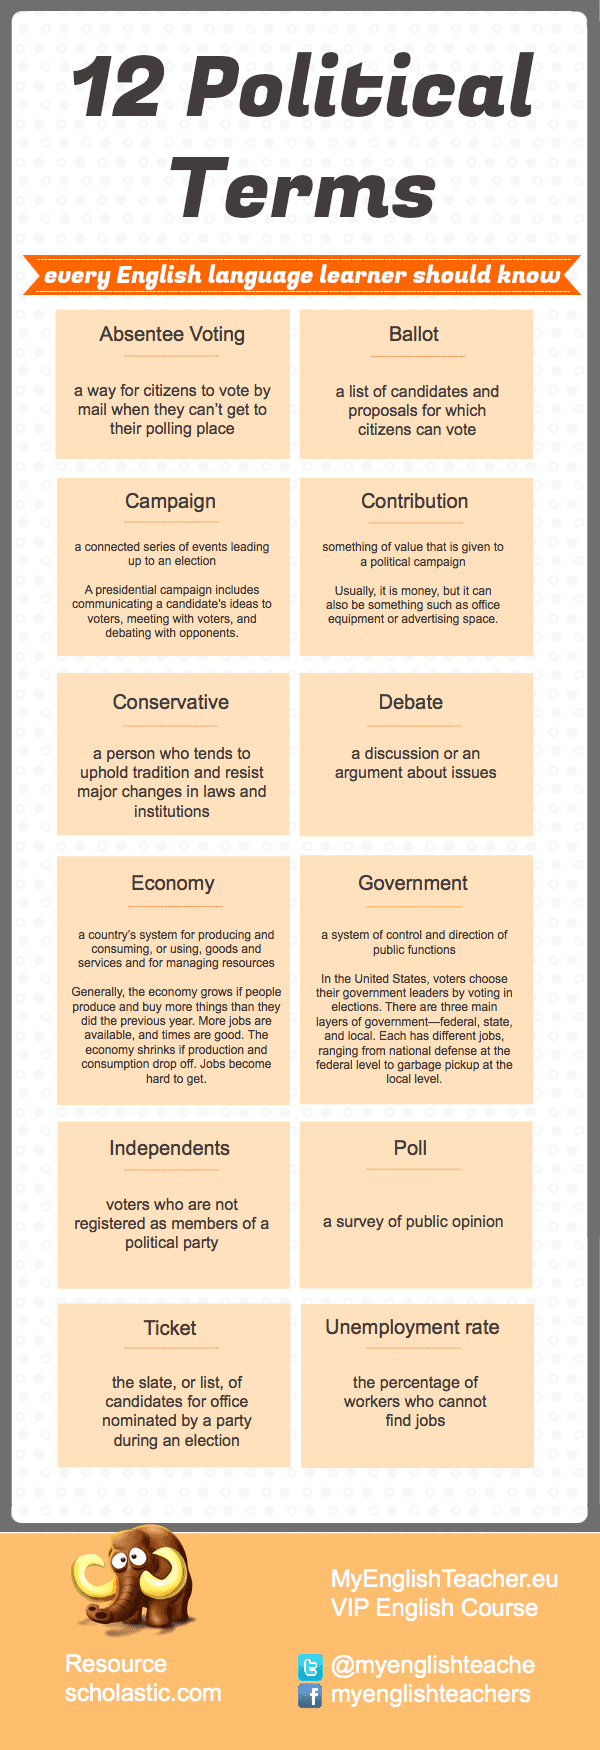 12 Political Terms Every English Language Learner Should Know (Infographic)